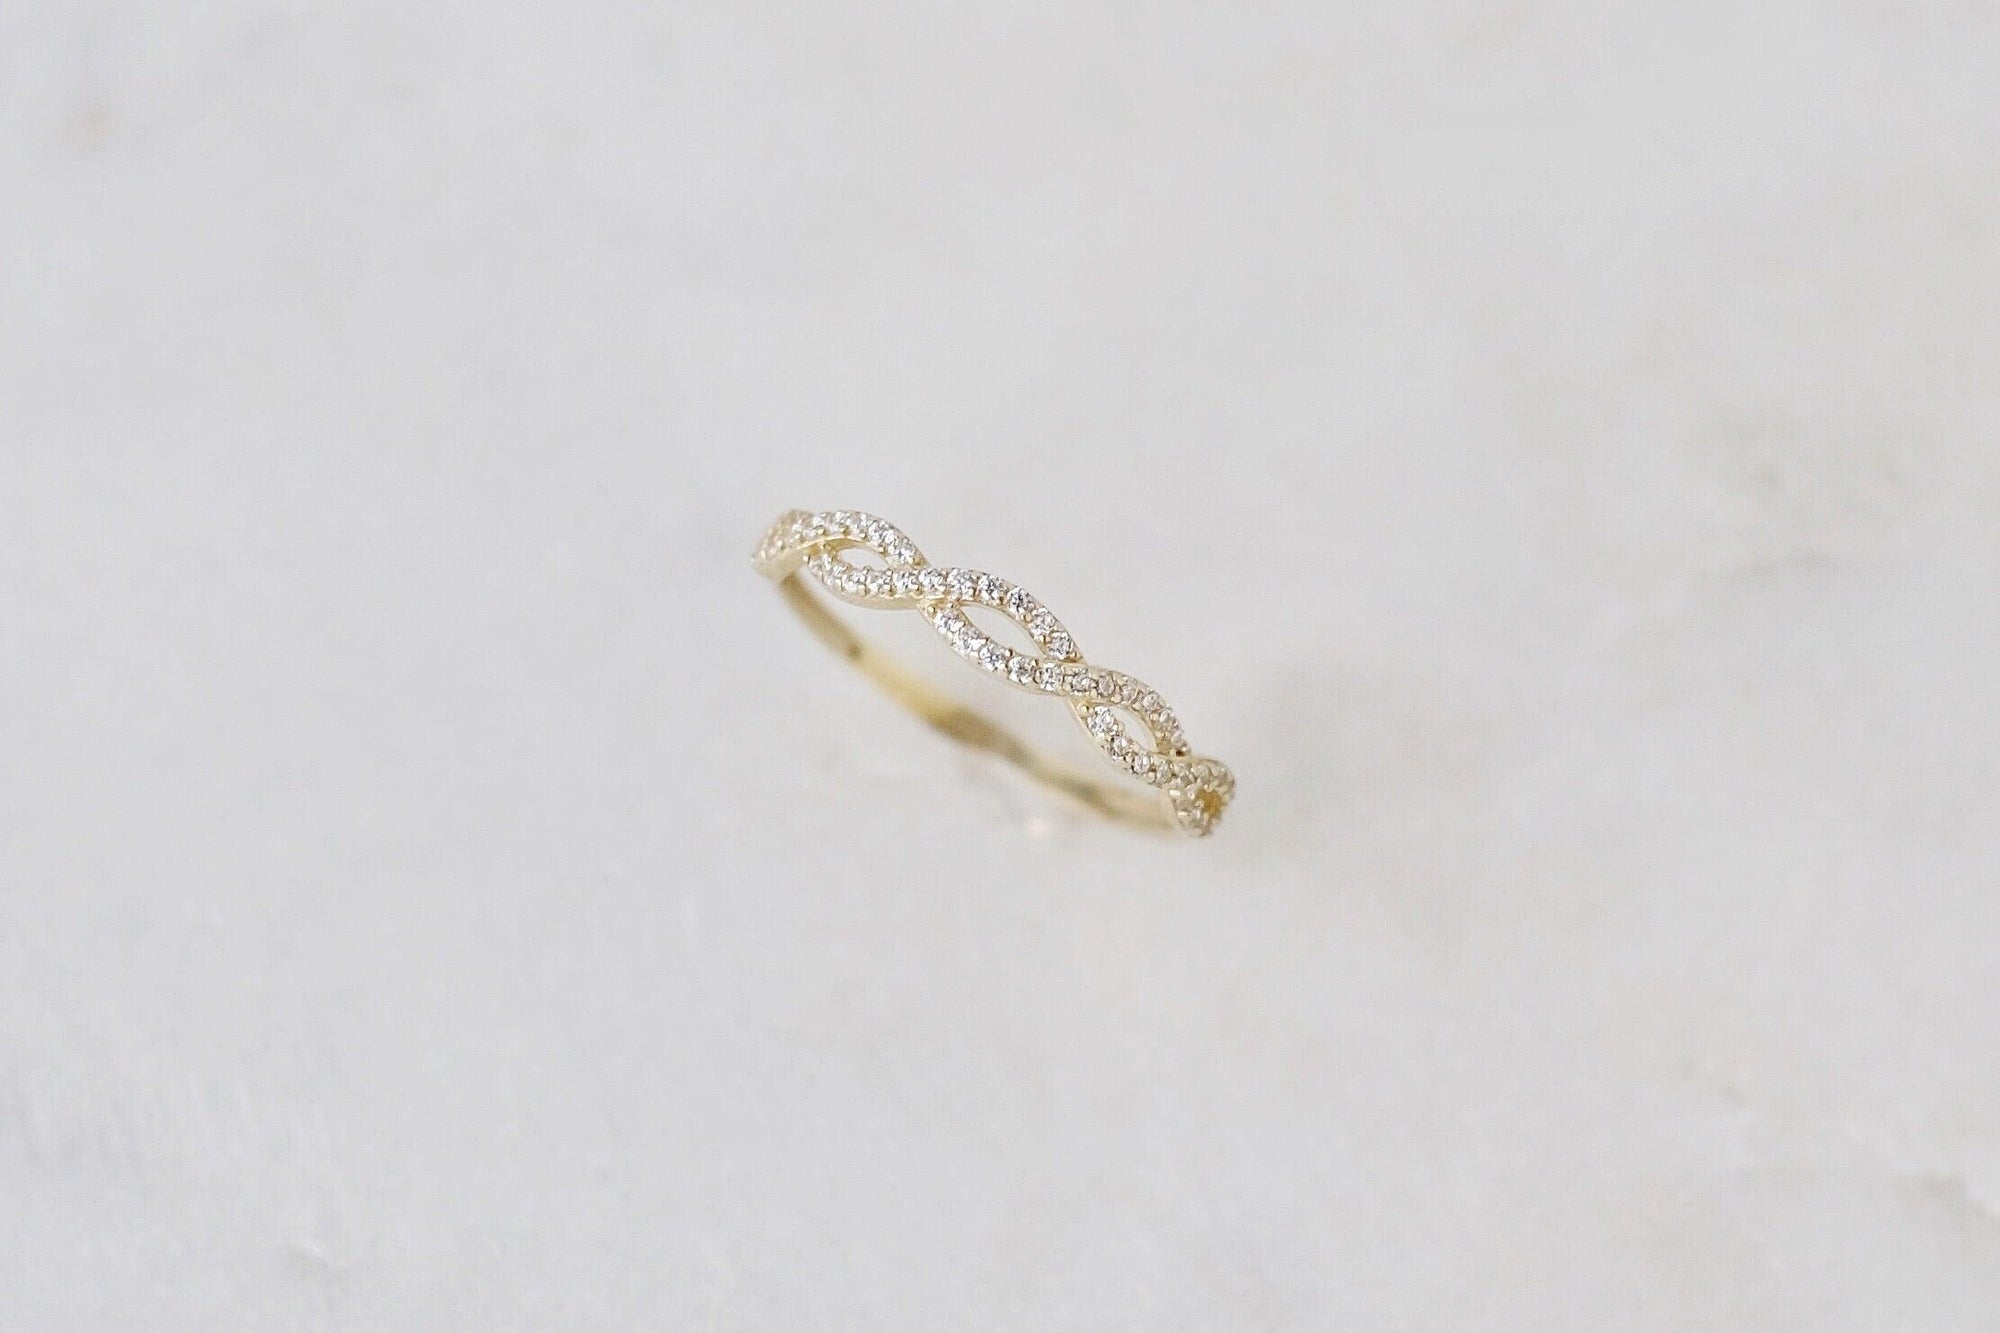 10k Gold Twist Ring